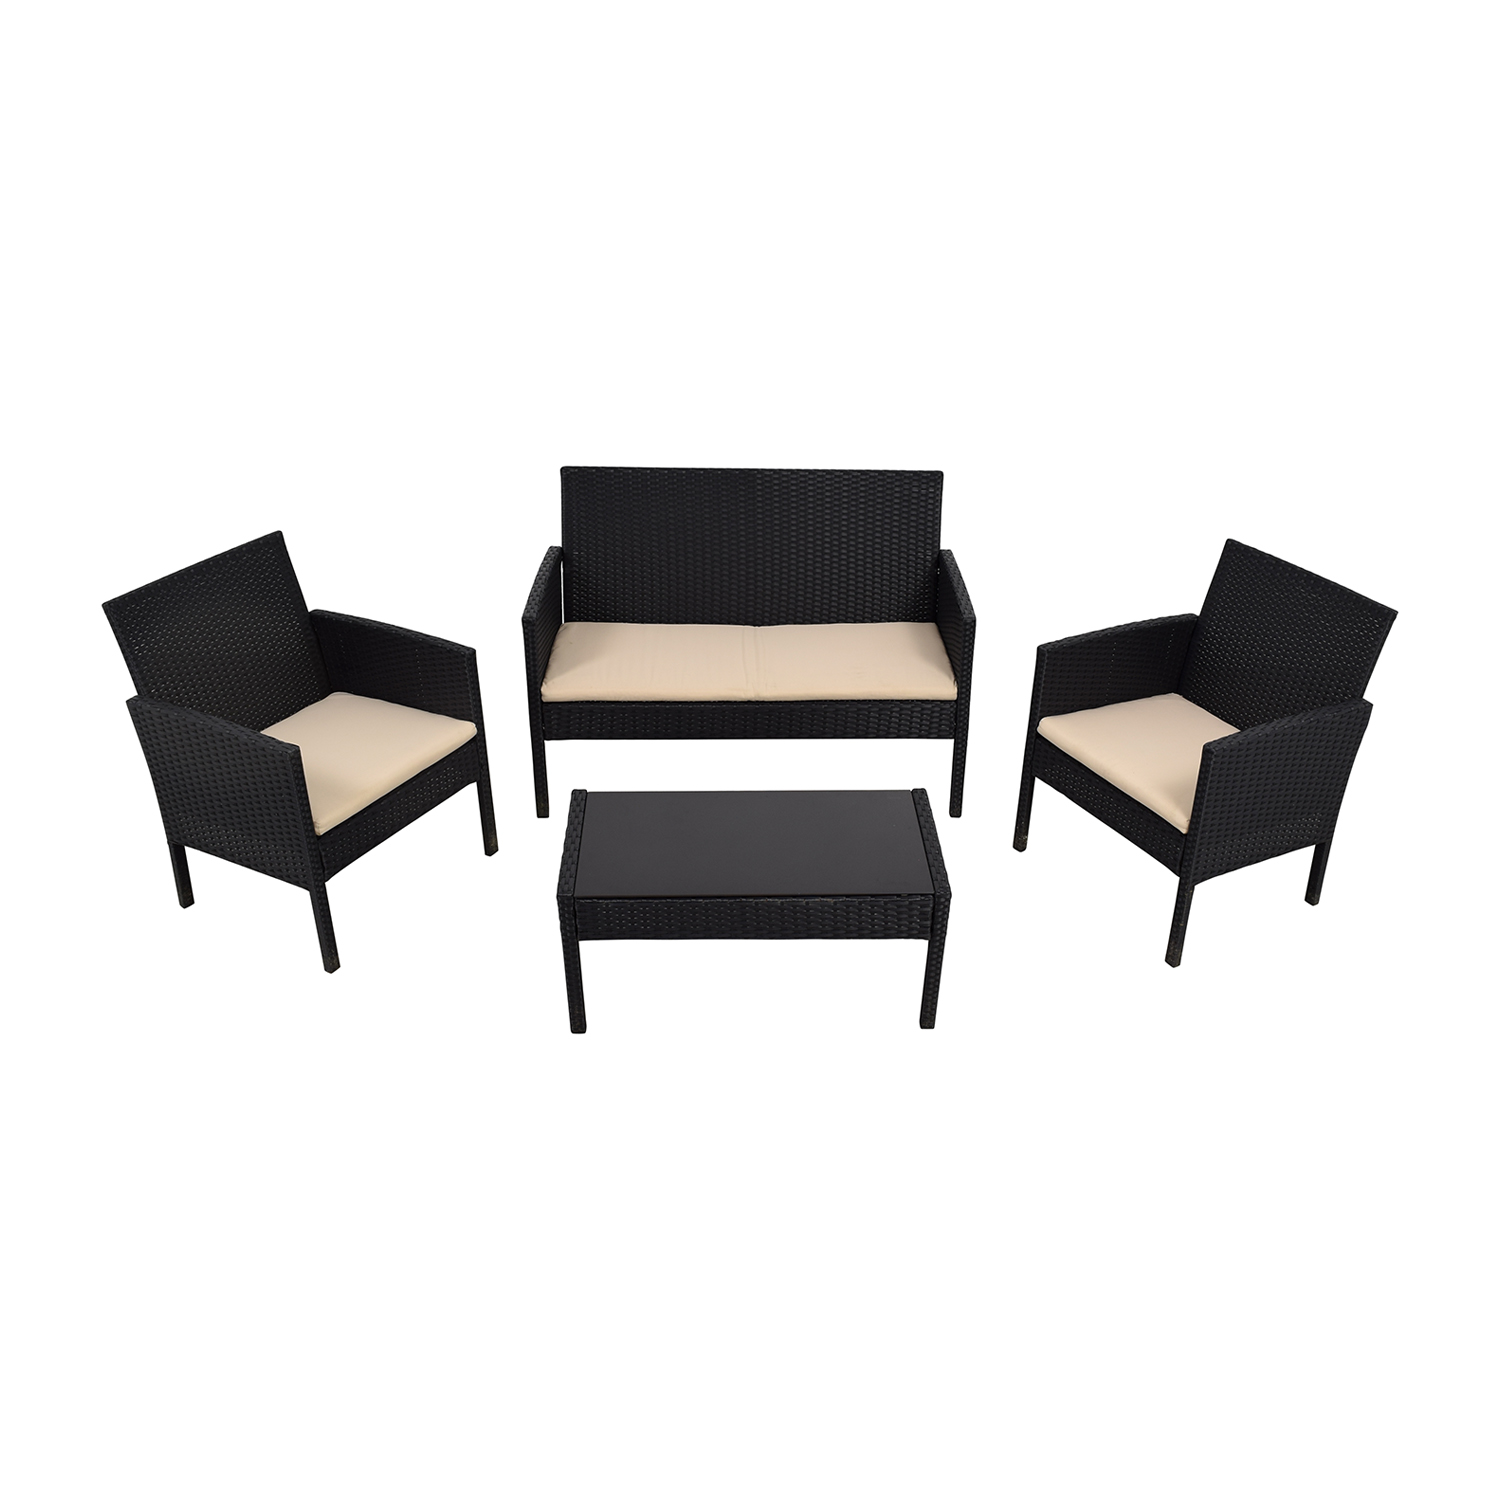 buy Radeway Black Outdoor Garden Patio Furniture Radeway